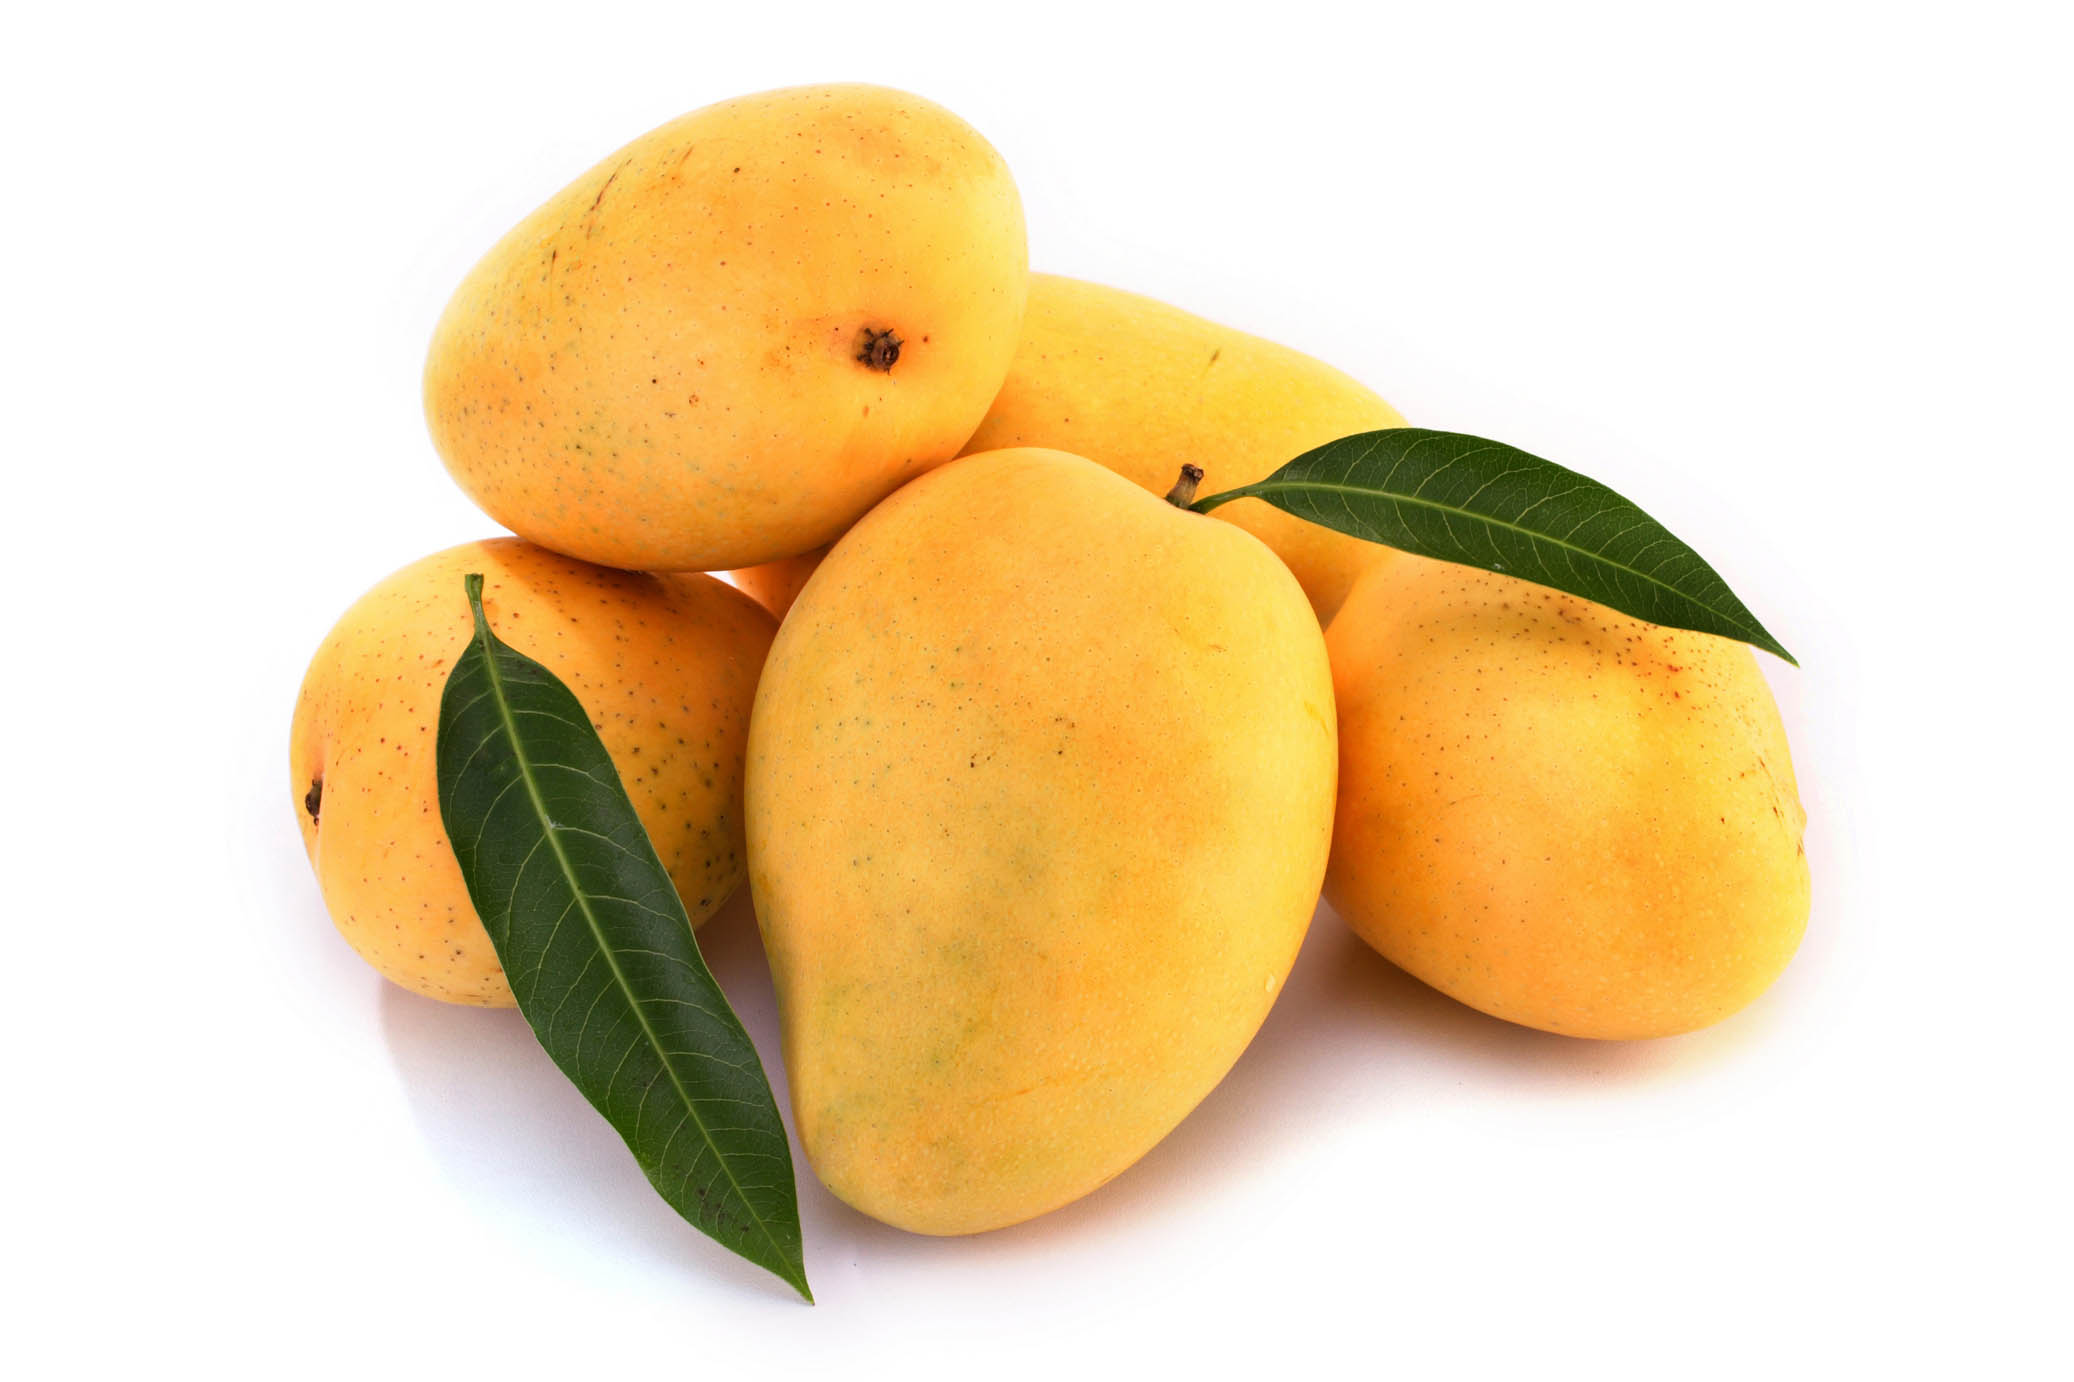 The not so aam mangoes of India